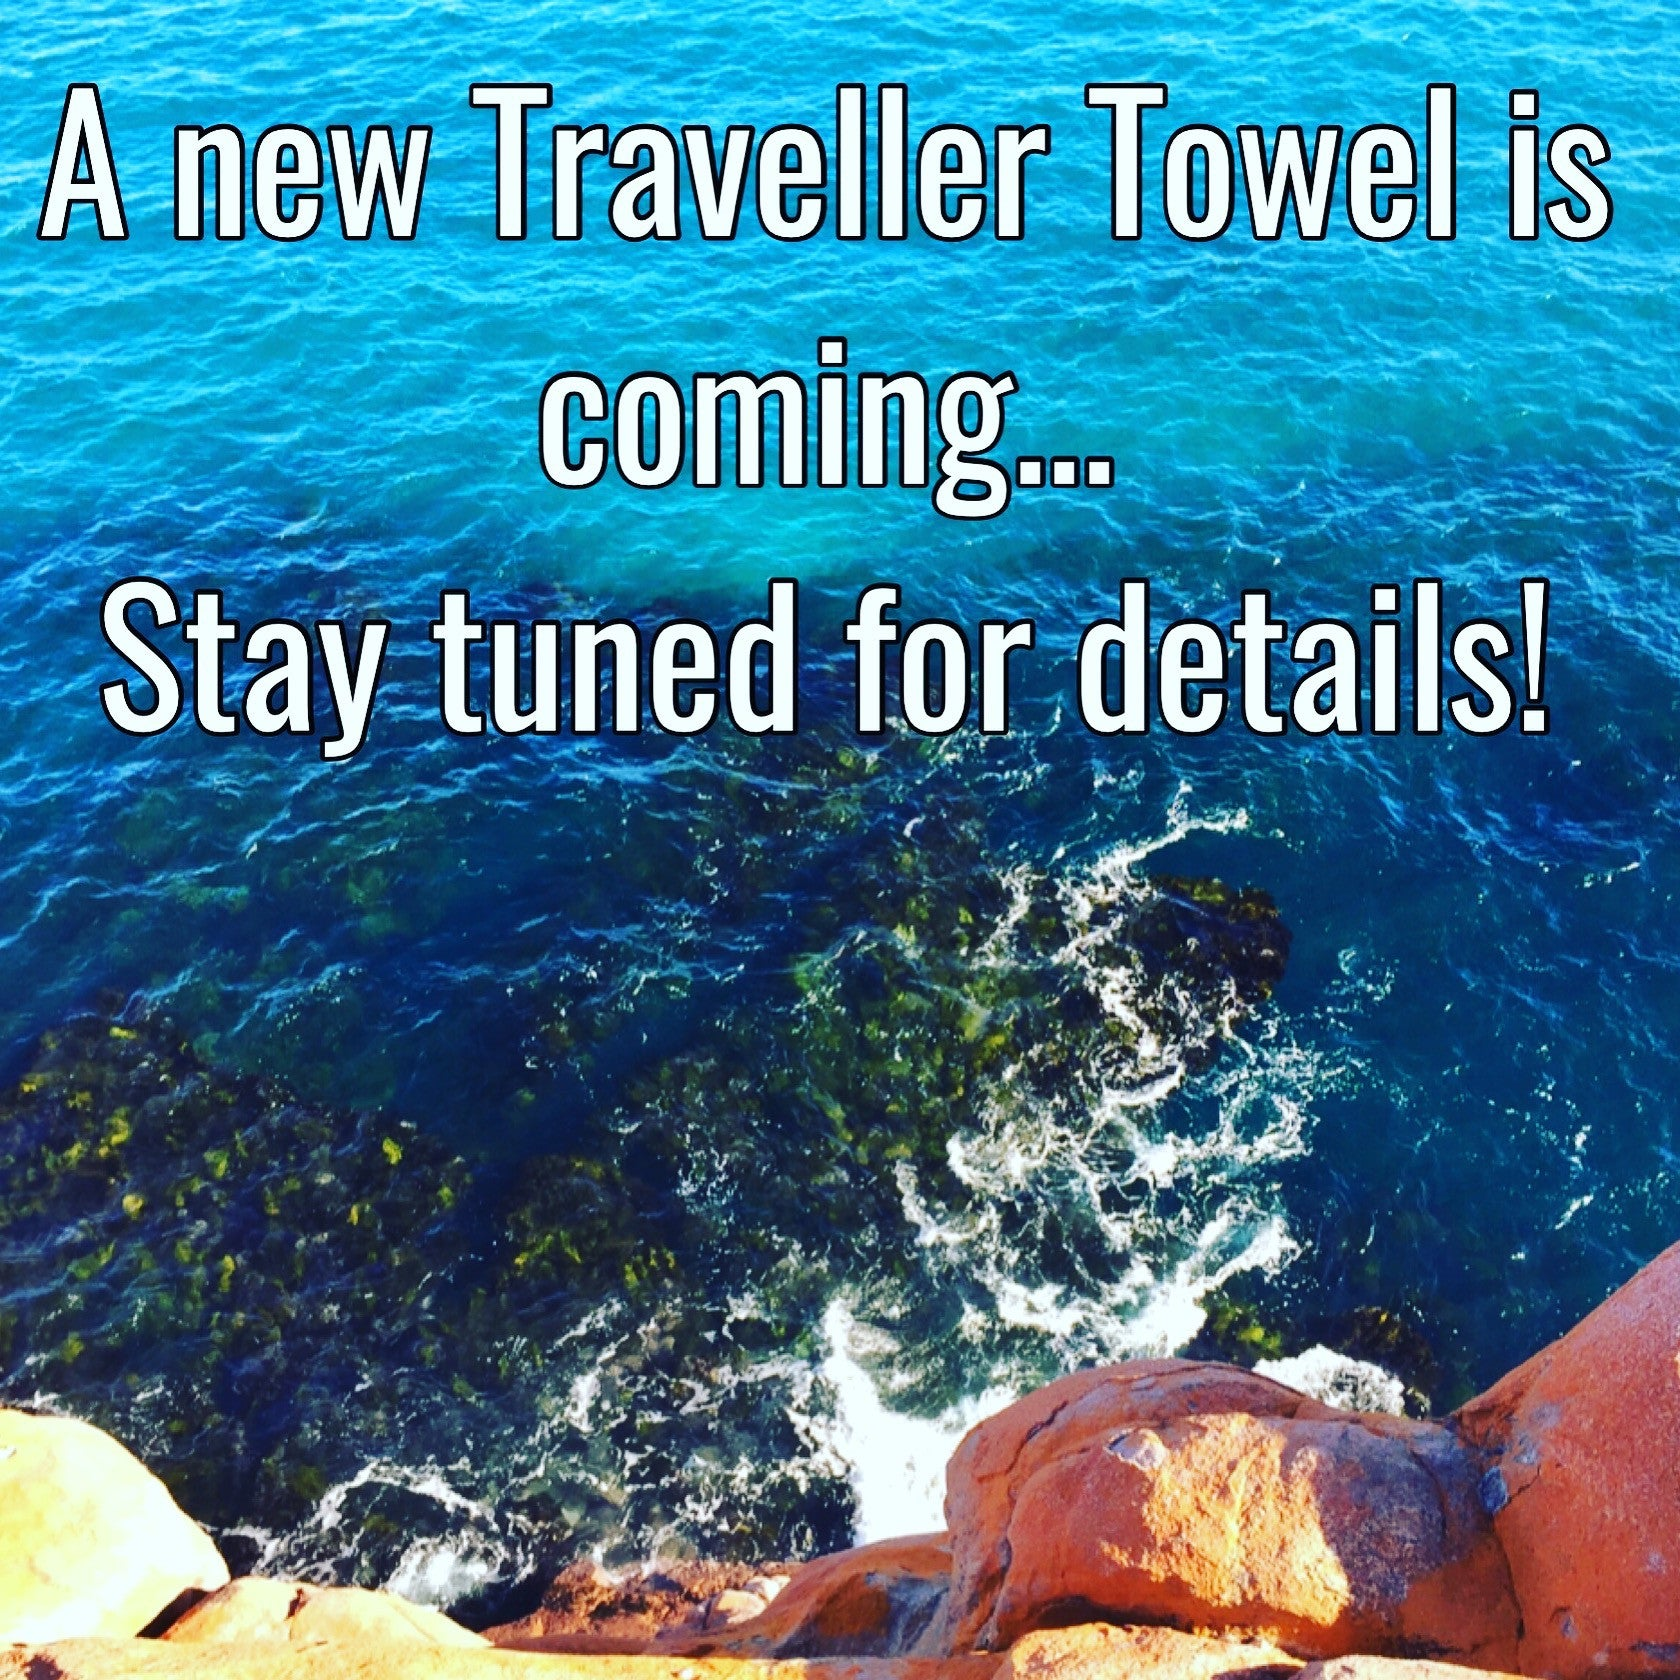 Our newest collection of Turkish towels is coming soon!